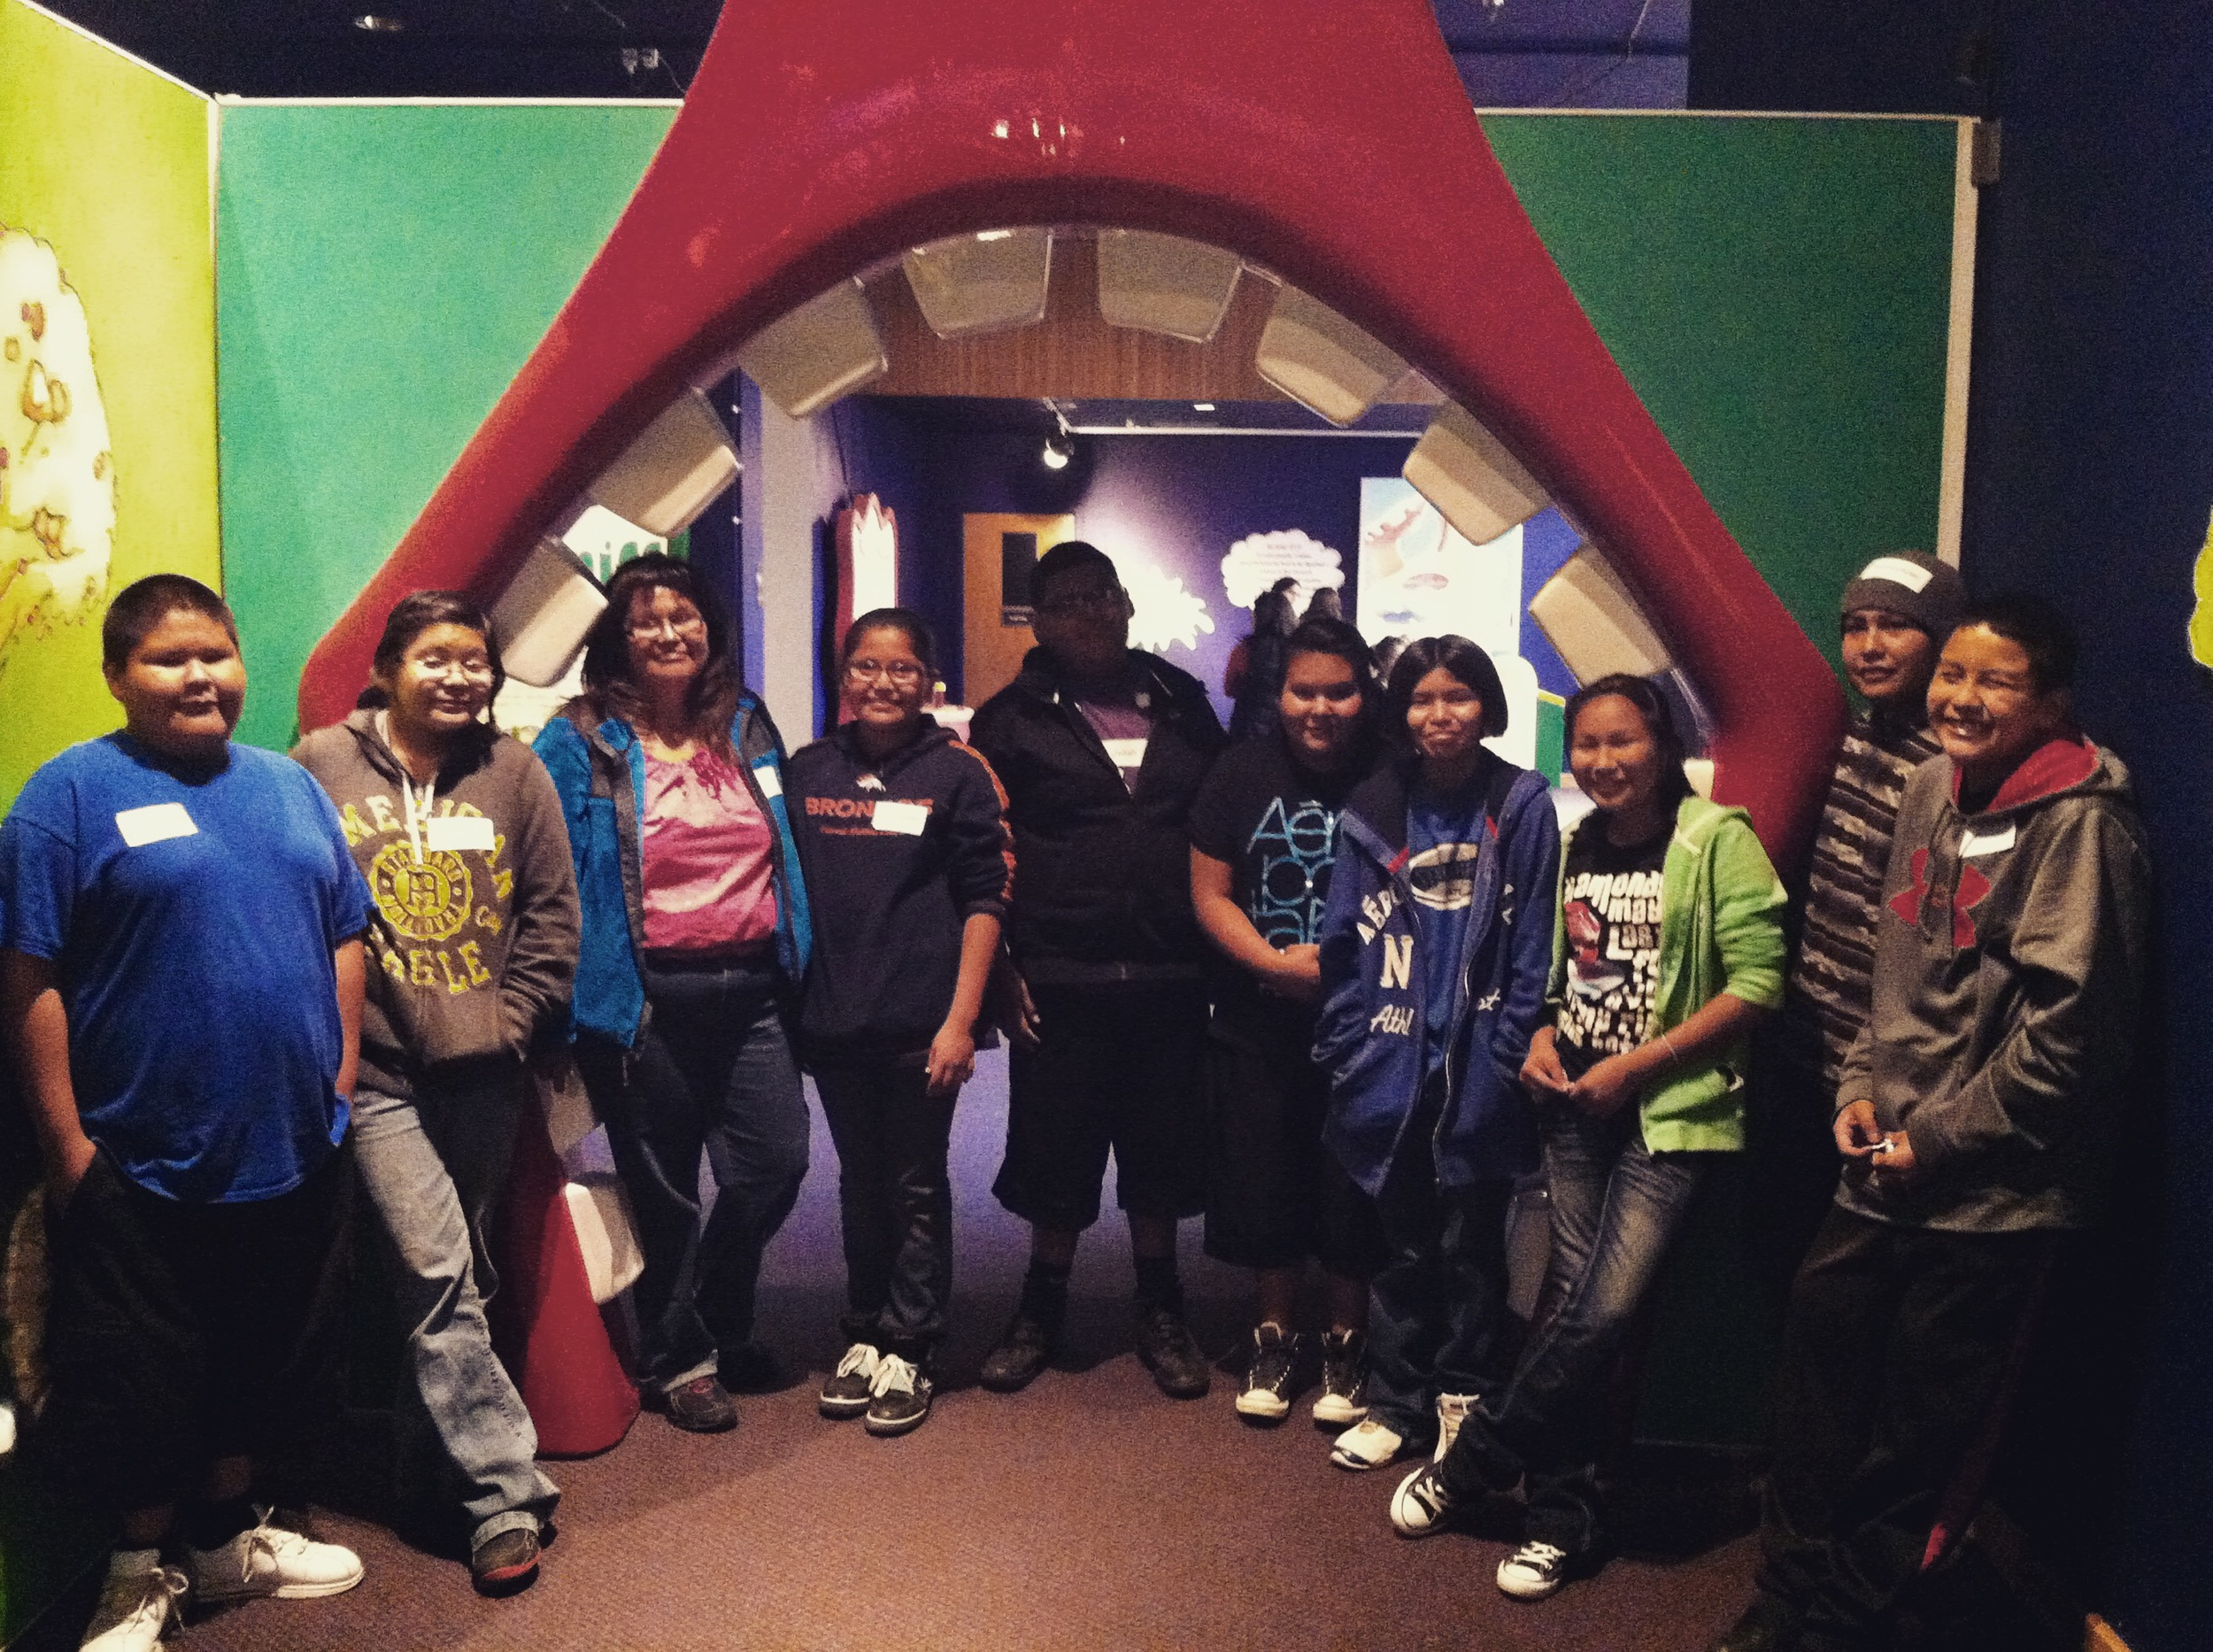 Lybrook students pose outside the Grossology exhibit